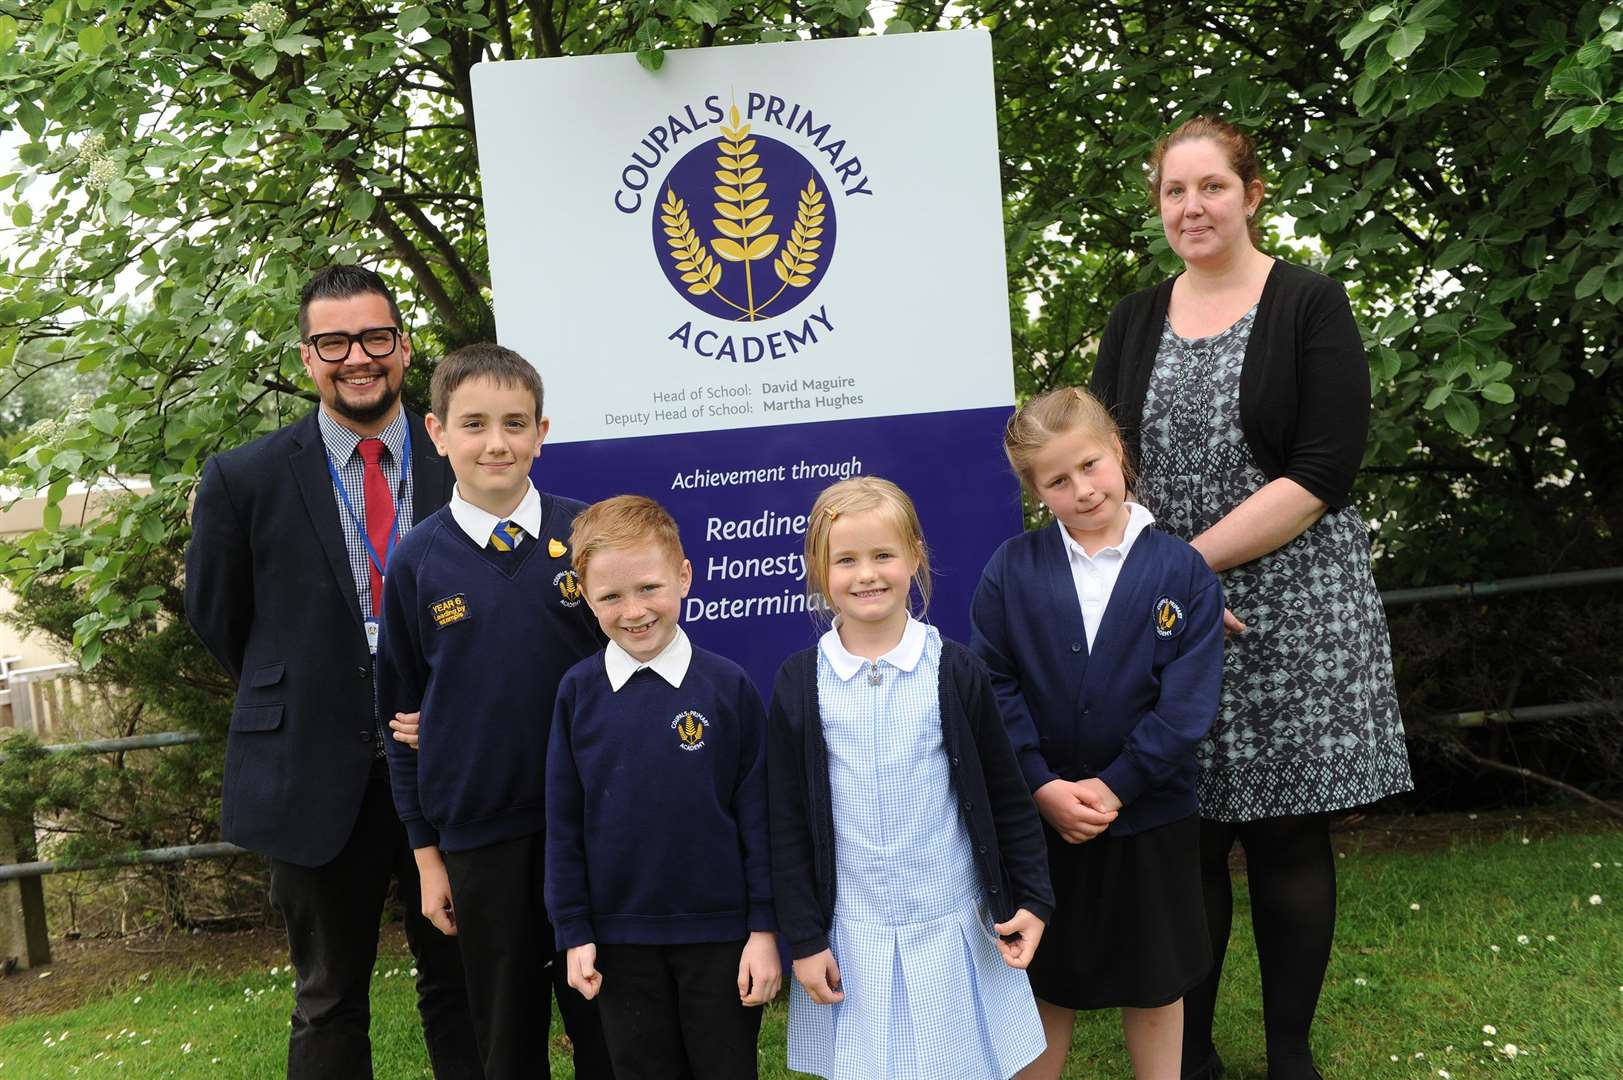 Coupals Primary at Academy at Chalkstone Way will be expanding..Pictured: pupils Sam Fowle, Jack Adams, Tilly Marsh and Jorja Cox along with head Teacher David Maguire and Deputy Head Martha Hughes. (3972515)